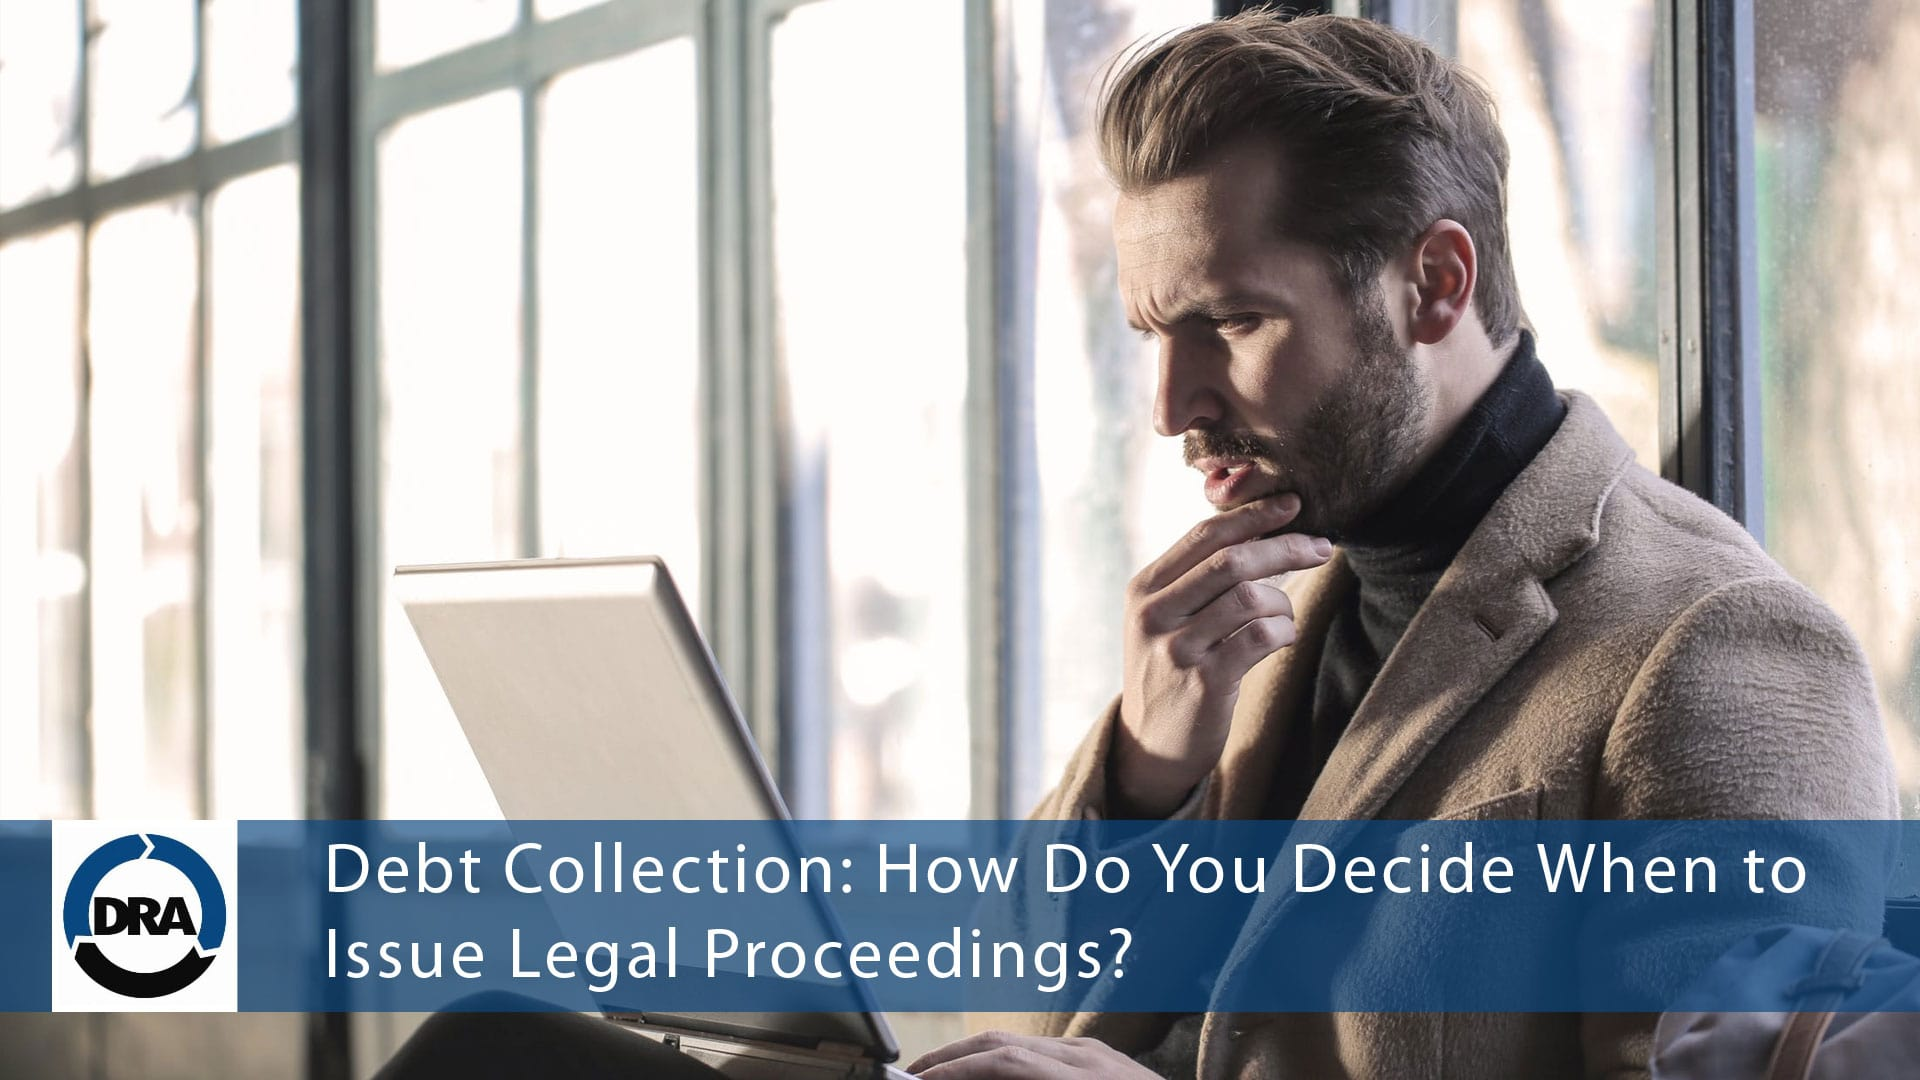 Debt Collection- How Do You Decide When to Issue Legal Proceedings?